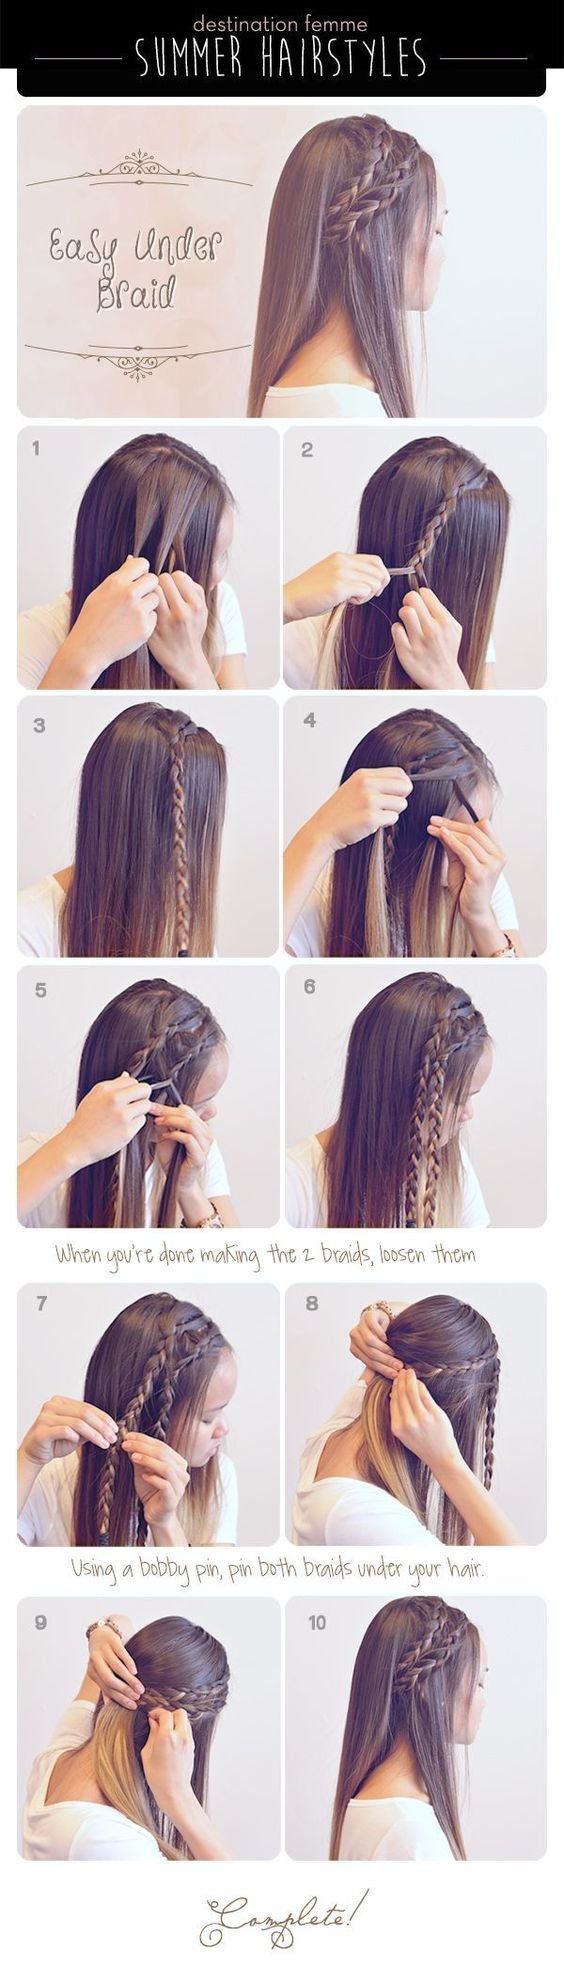 simple and easy hairstyle tutorials for your daily look! #hairstyles